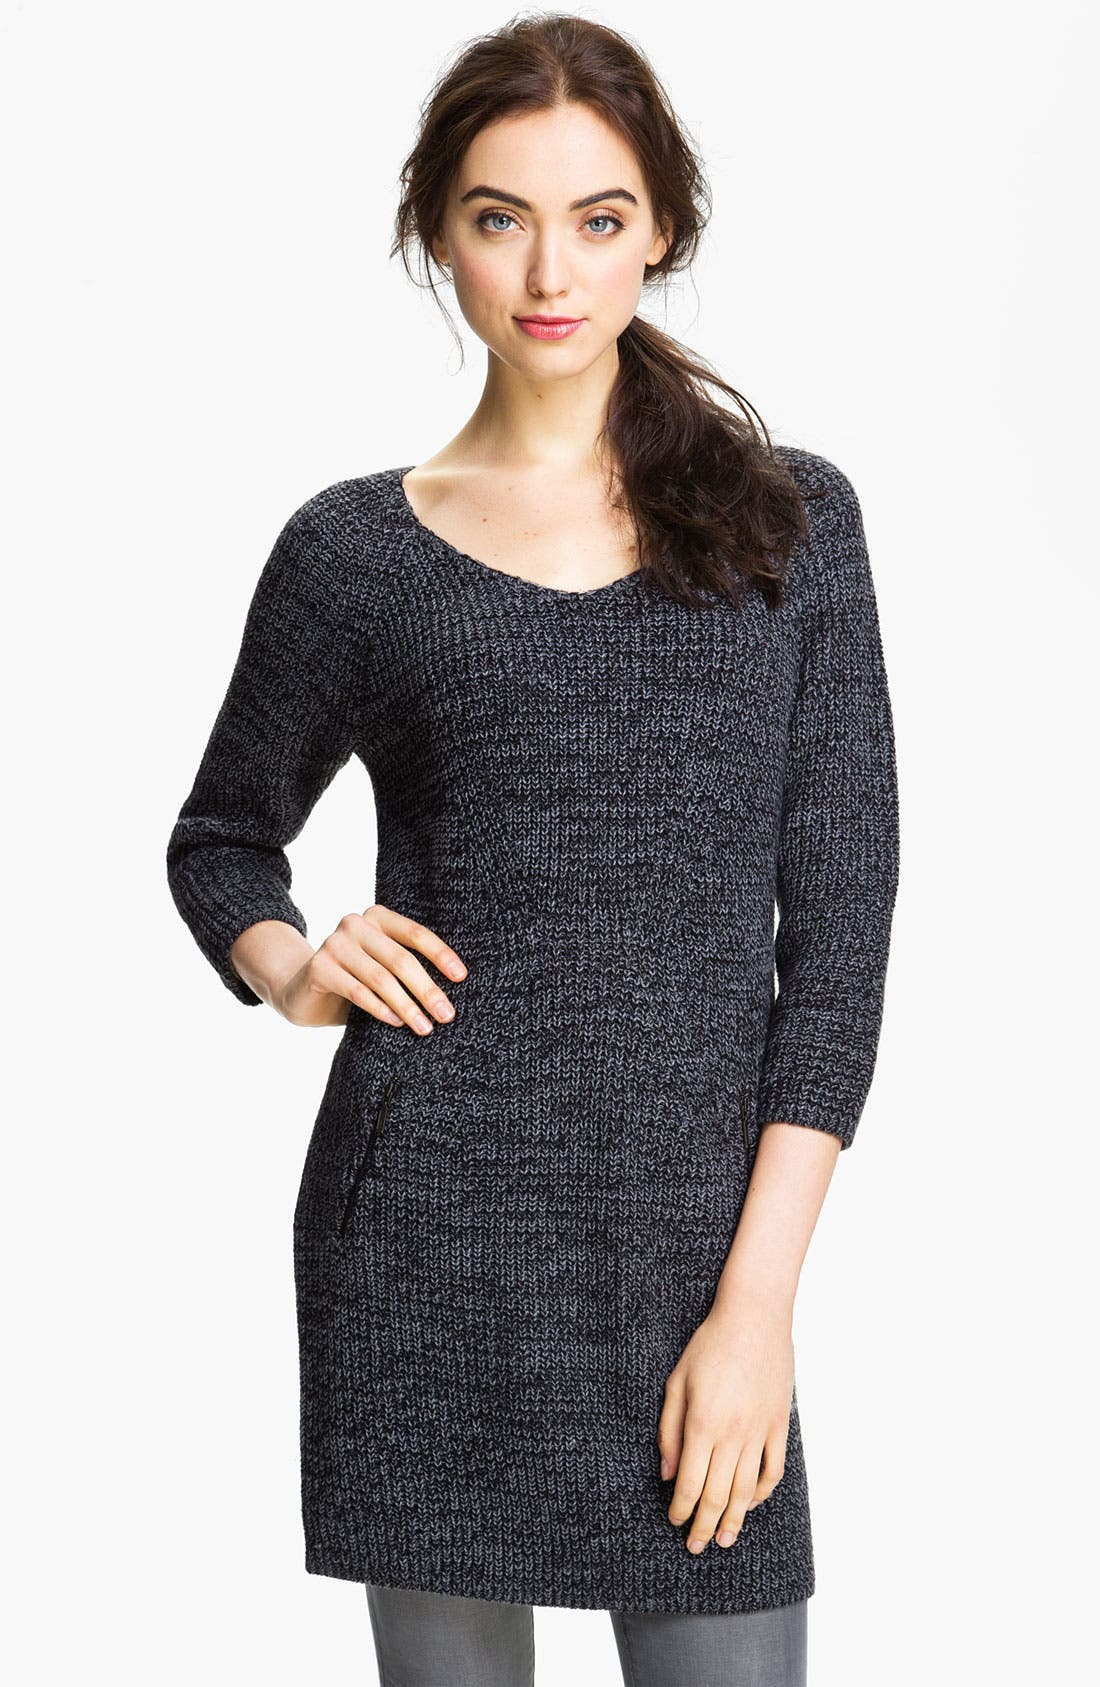 Main Image - Caslon® Shaker Stitch Sweater Dress